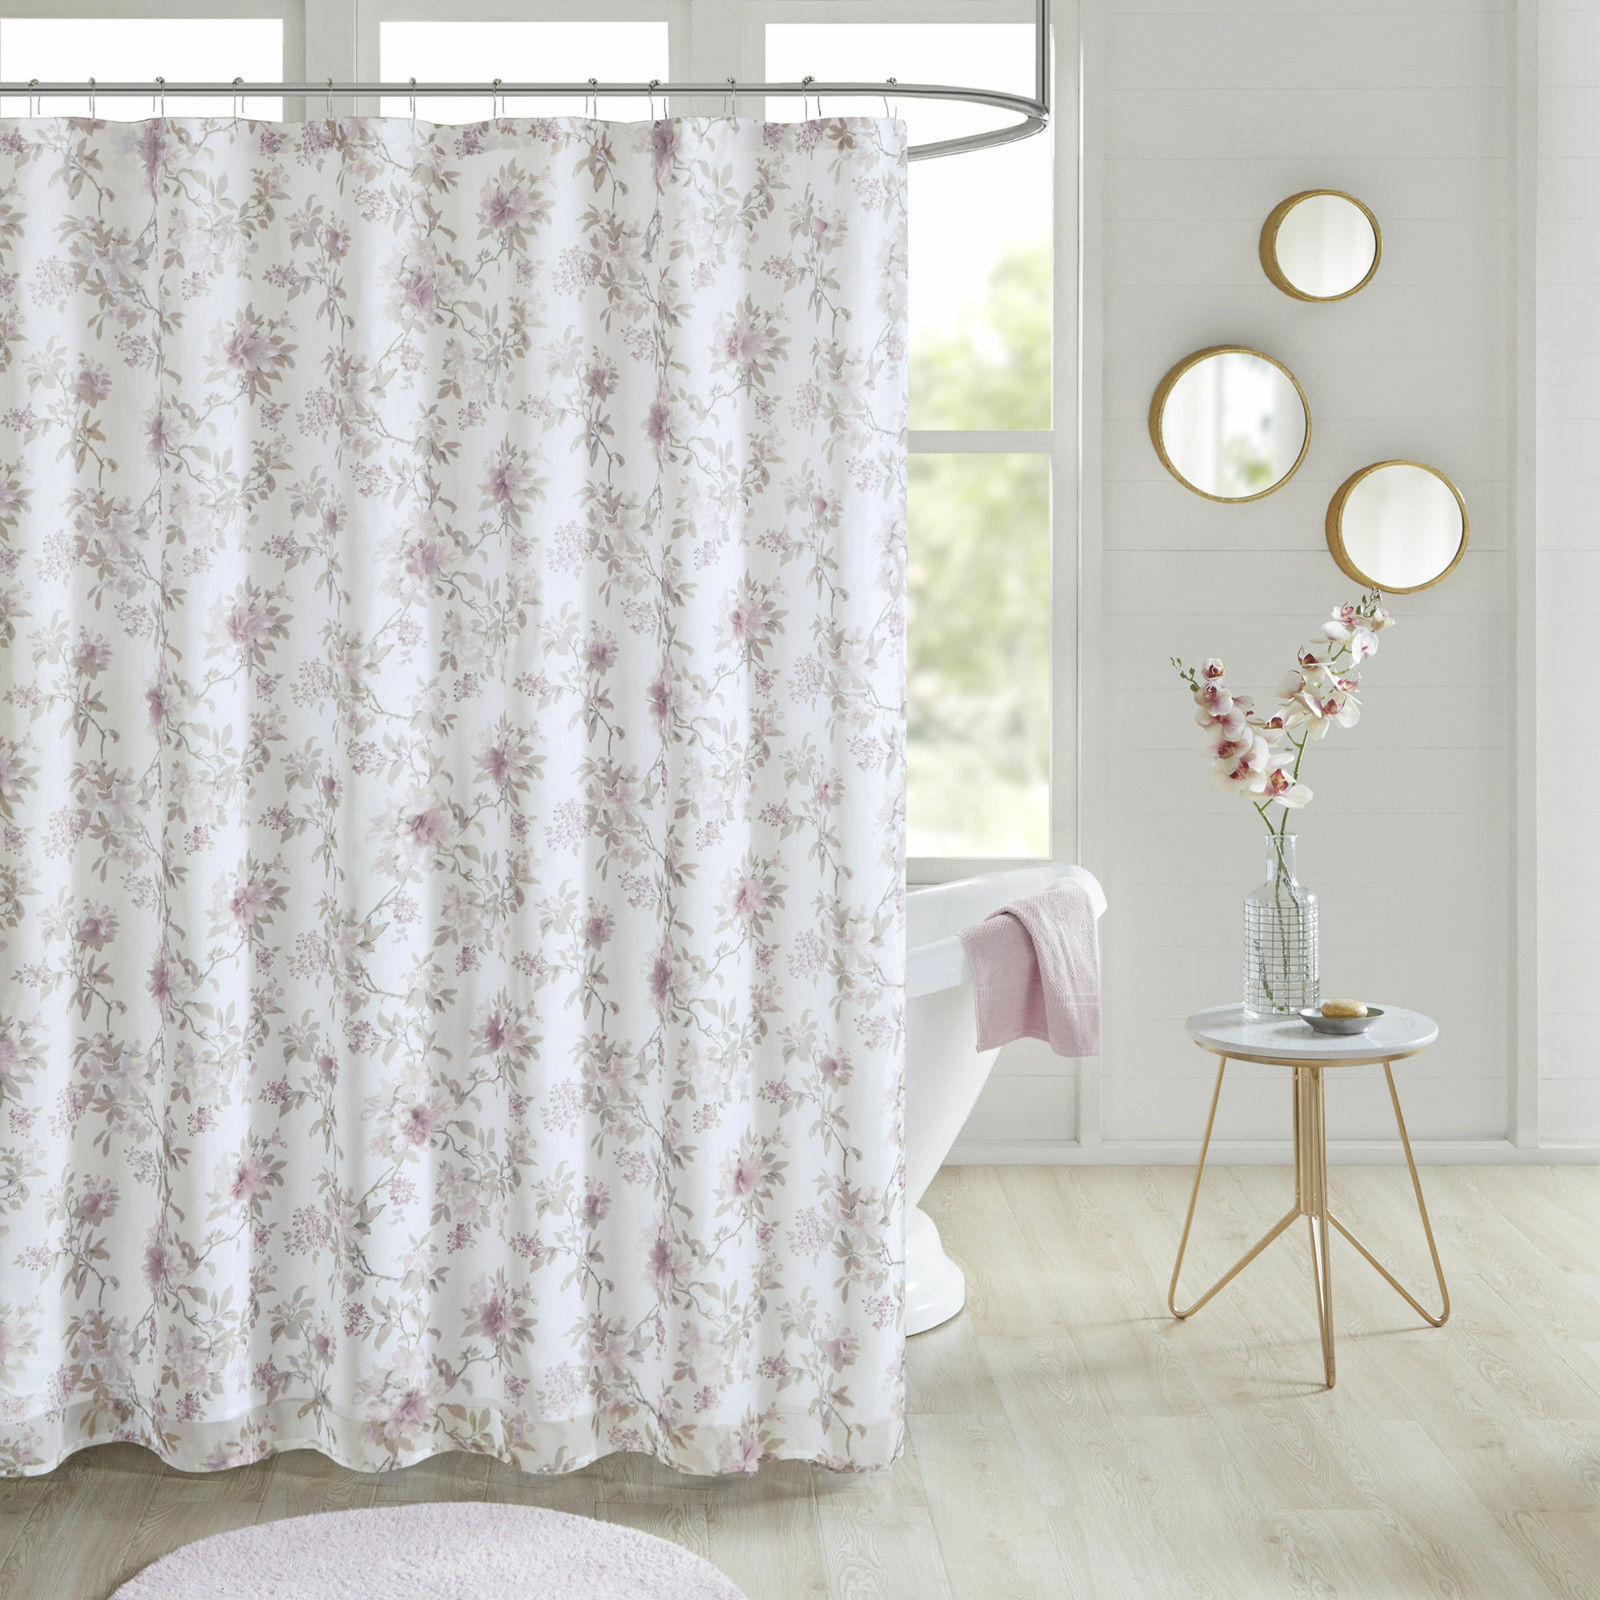 Floral Embellished Shower Curtain